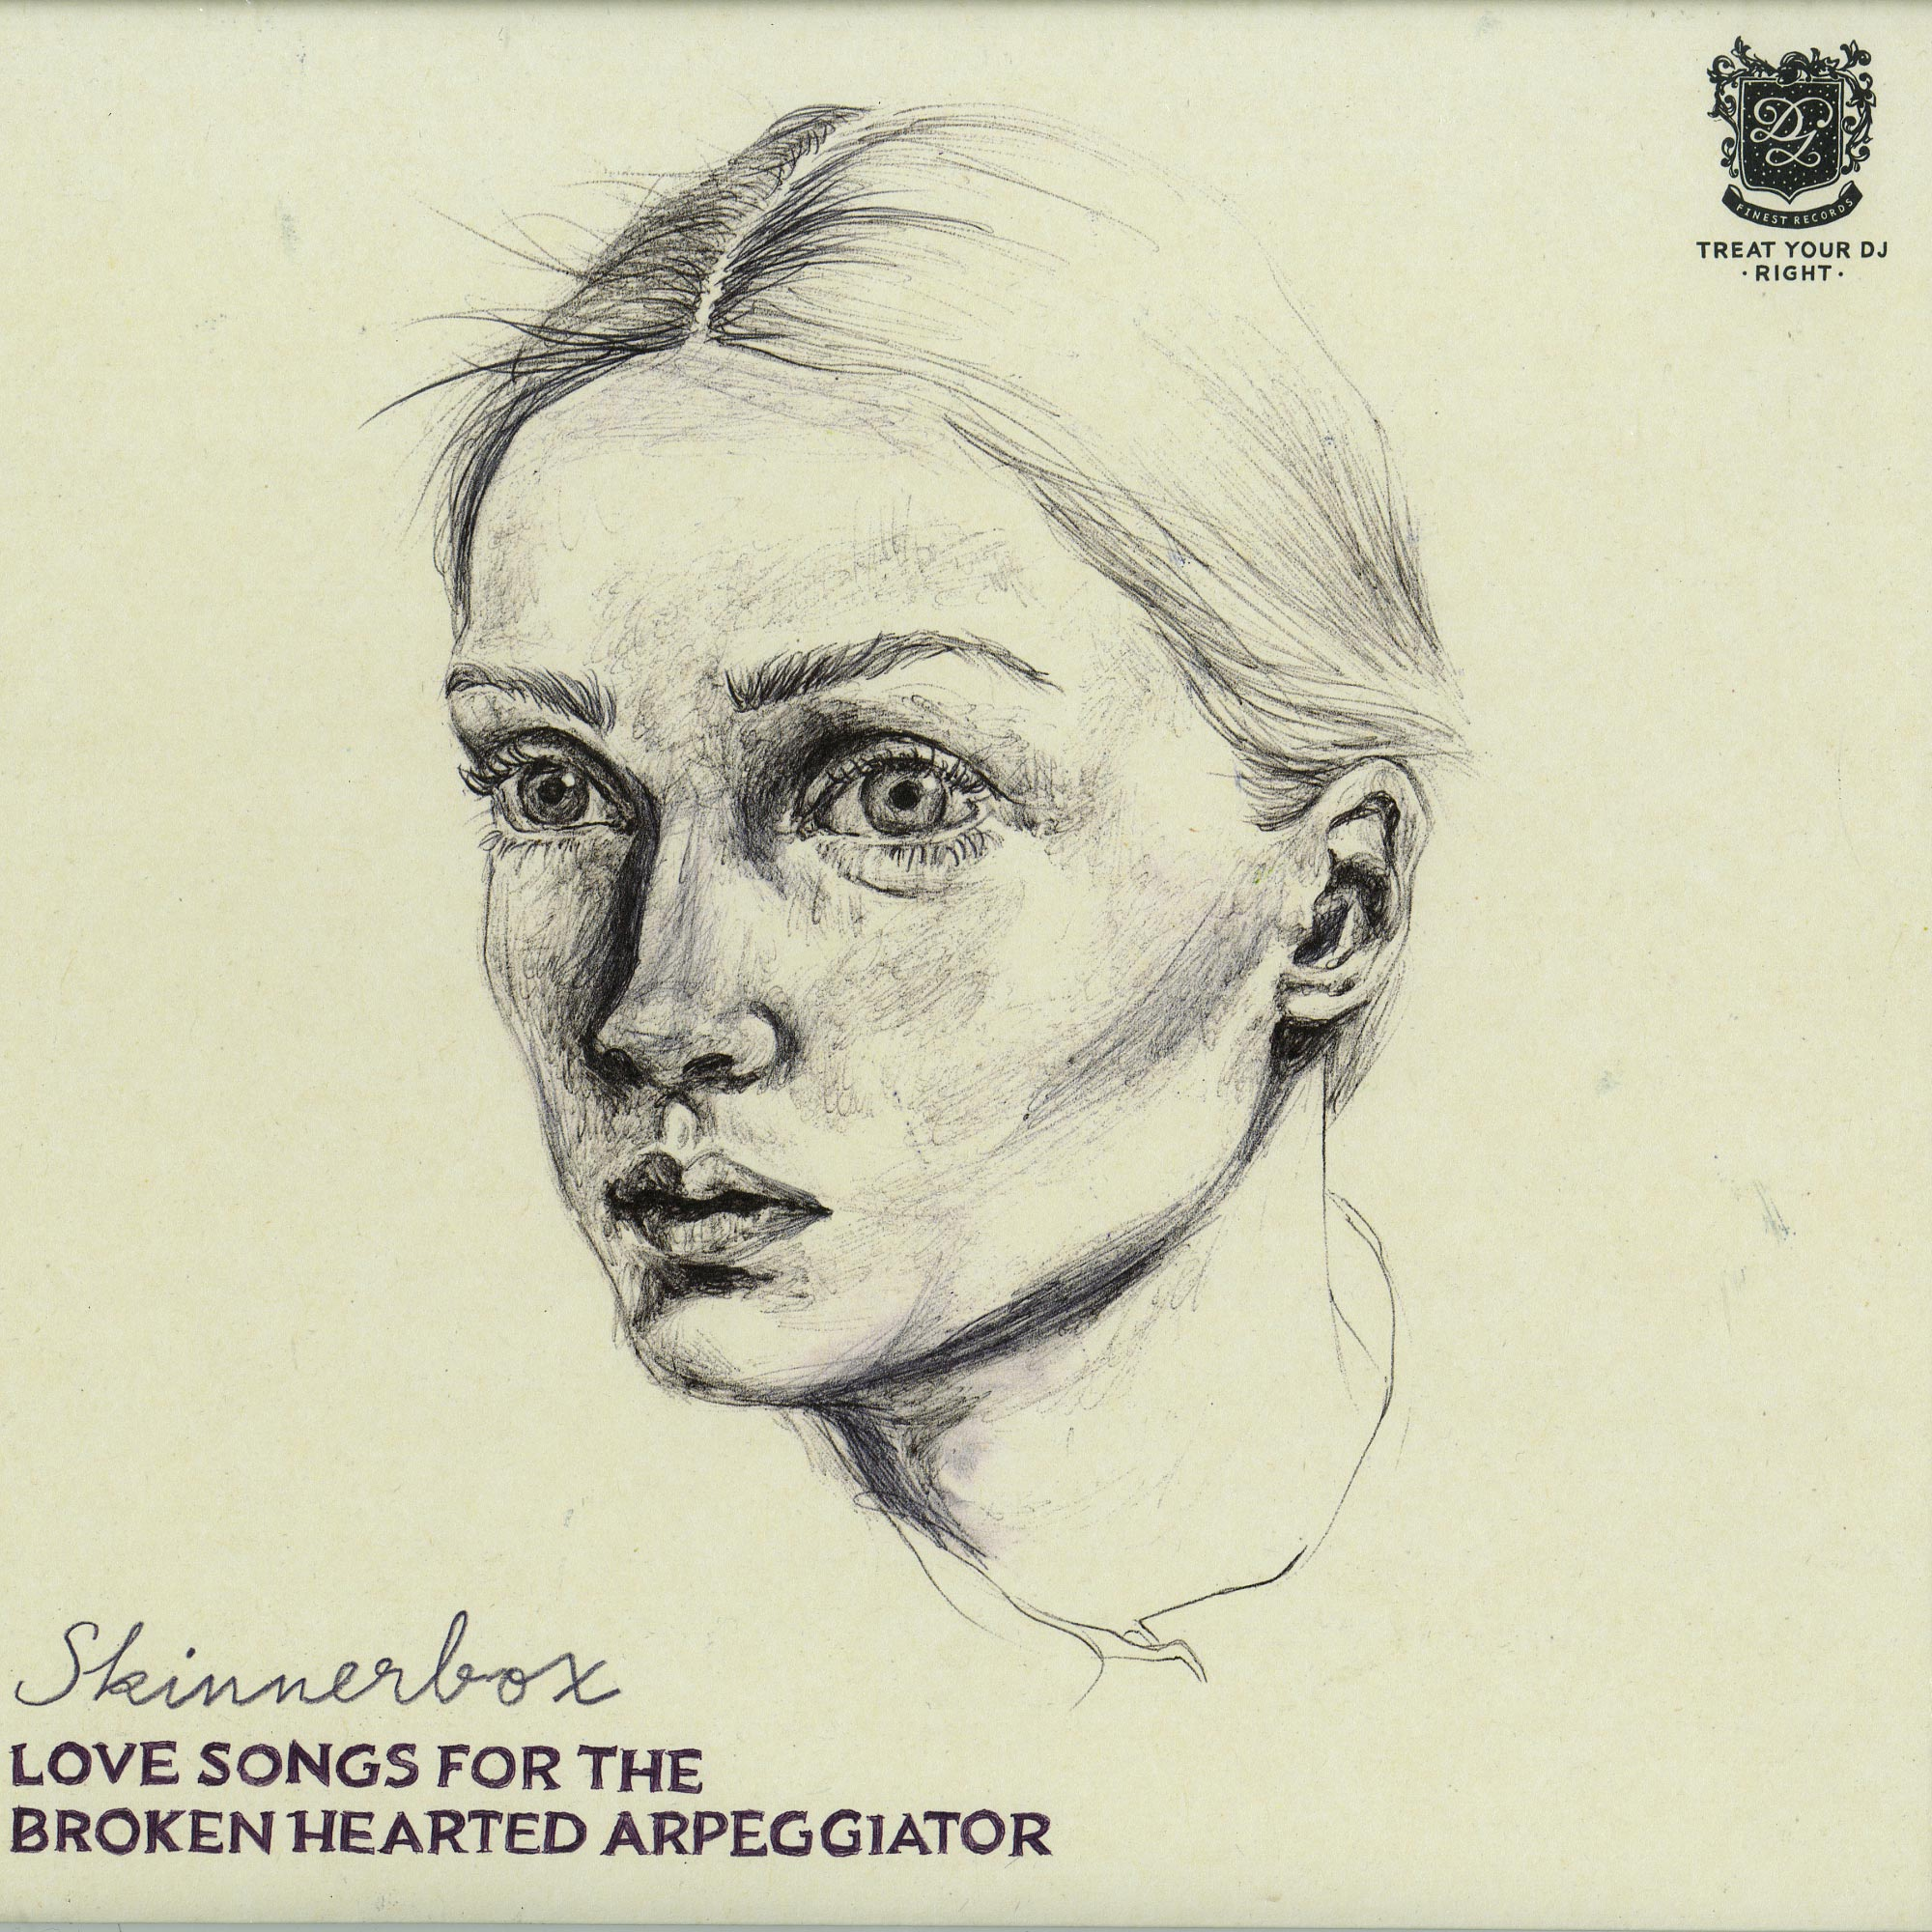 Skinnerbox - LOVE SONGS FOR THE BROKEN HEARTED